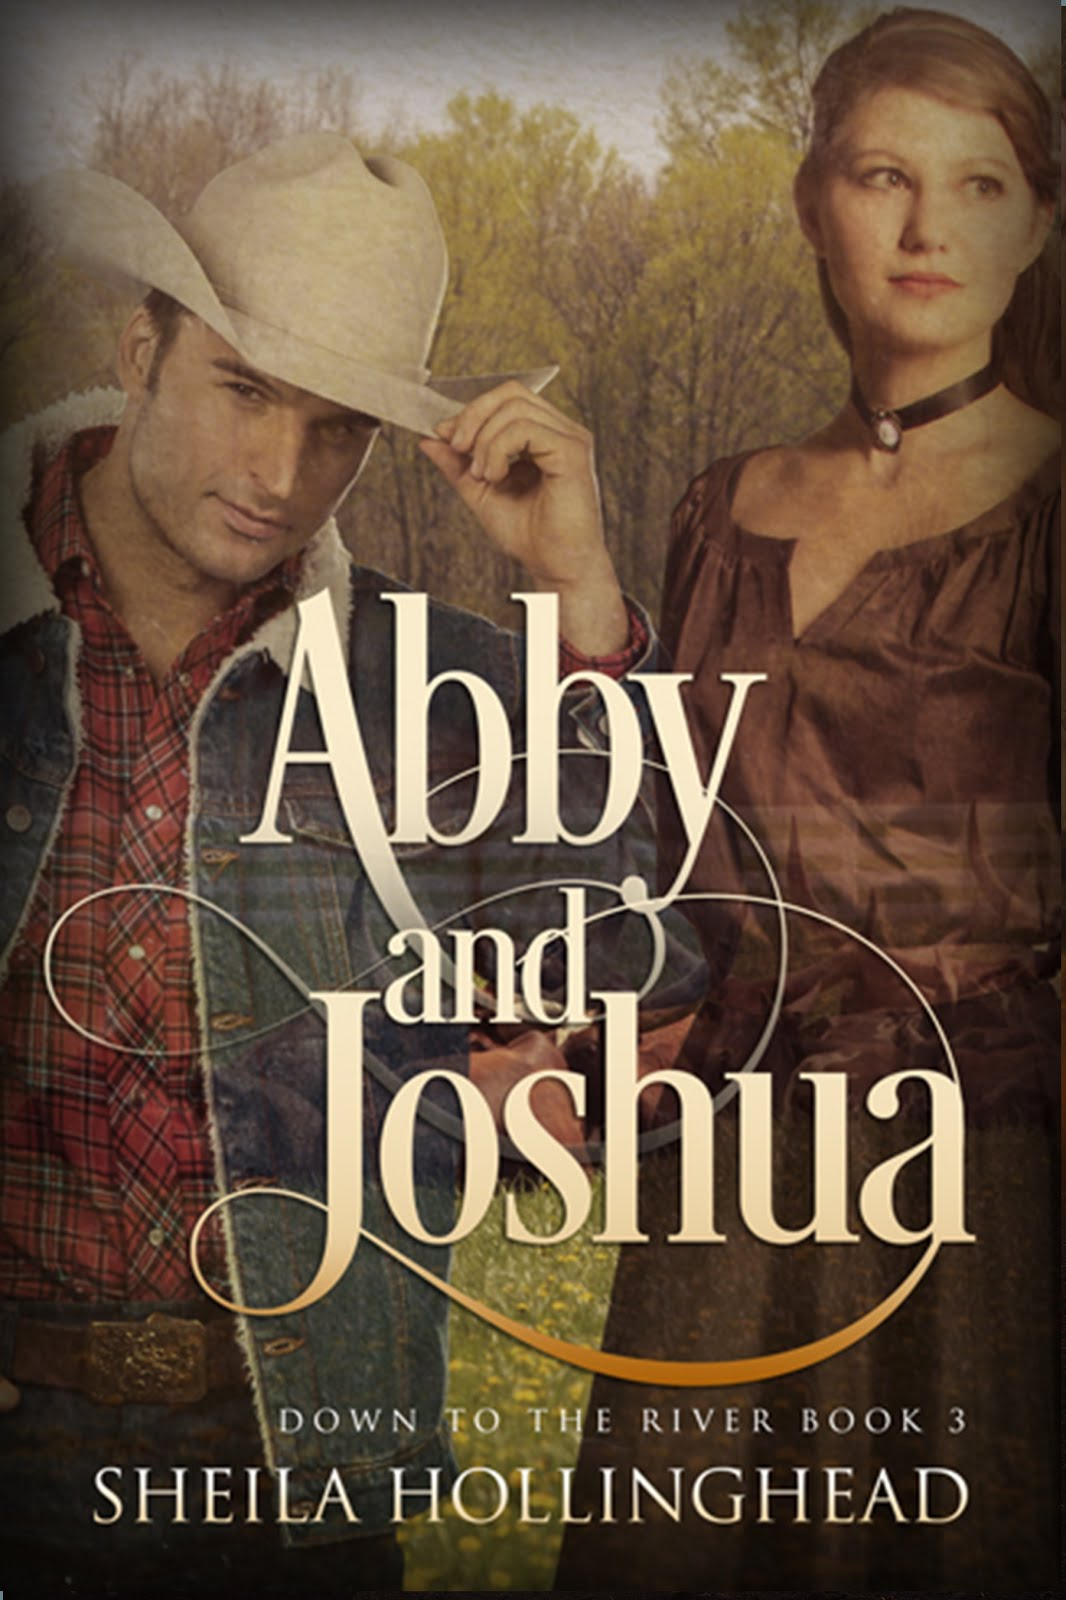 Abby and Joshua